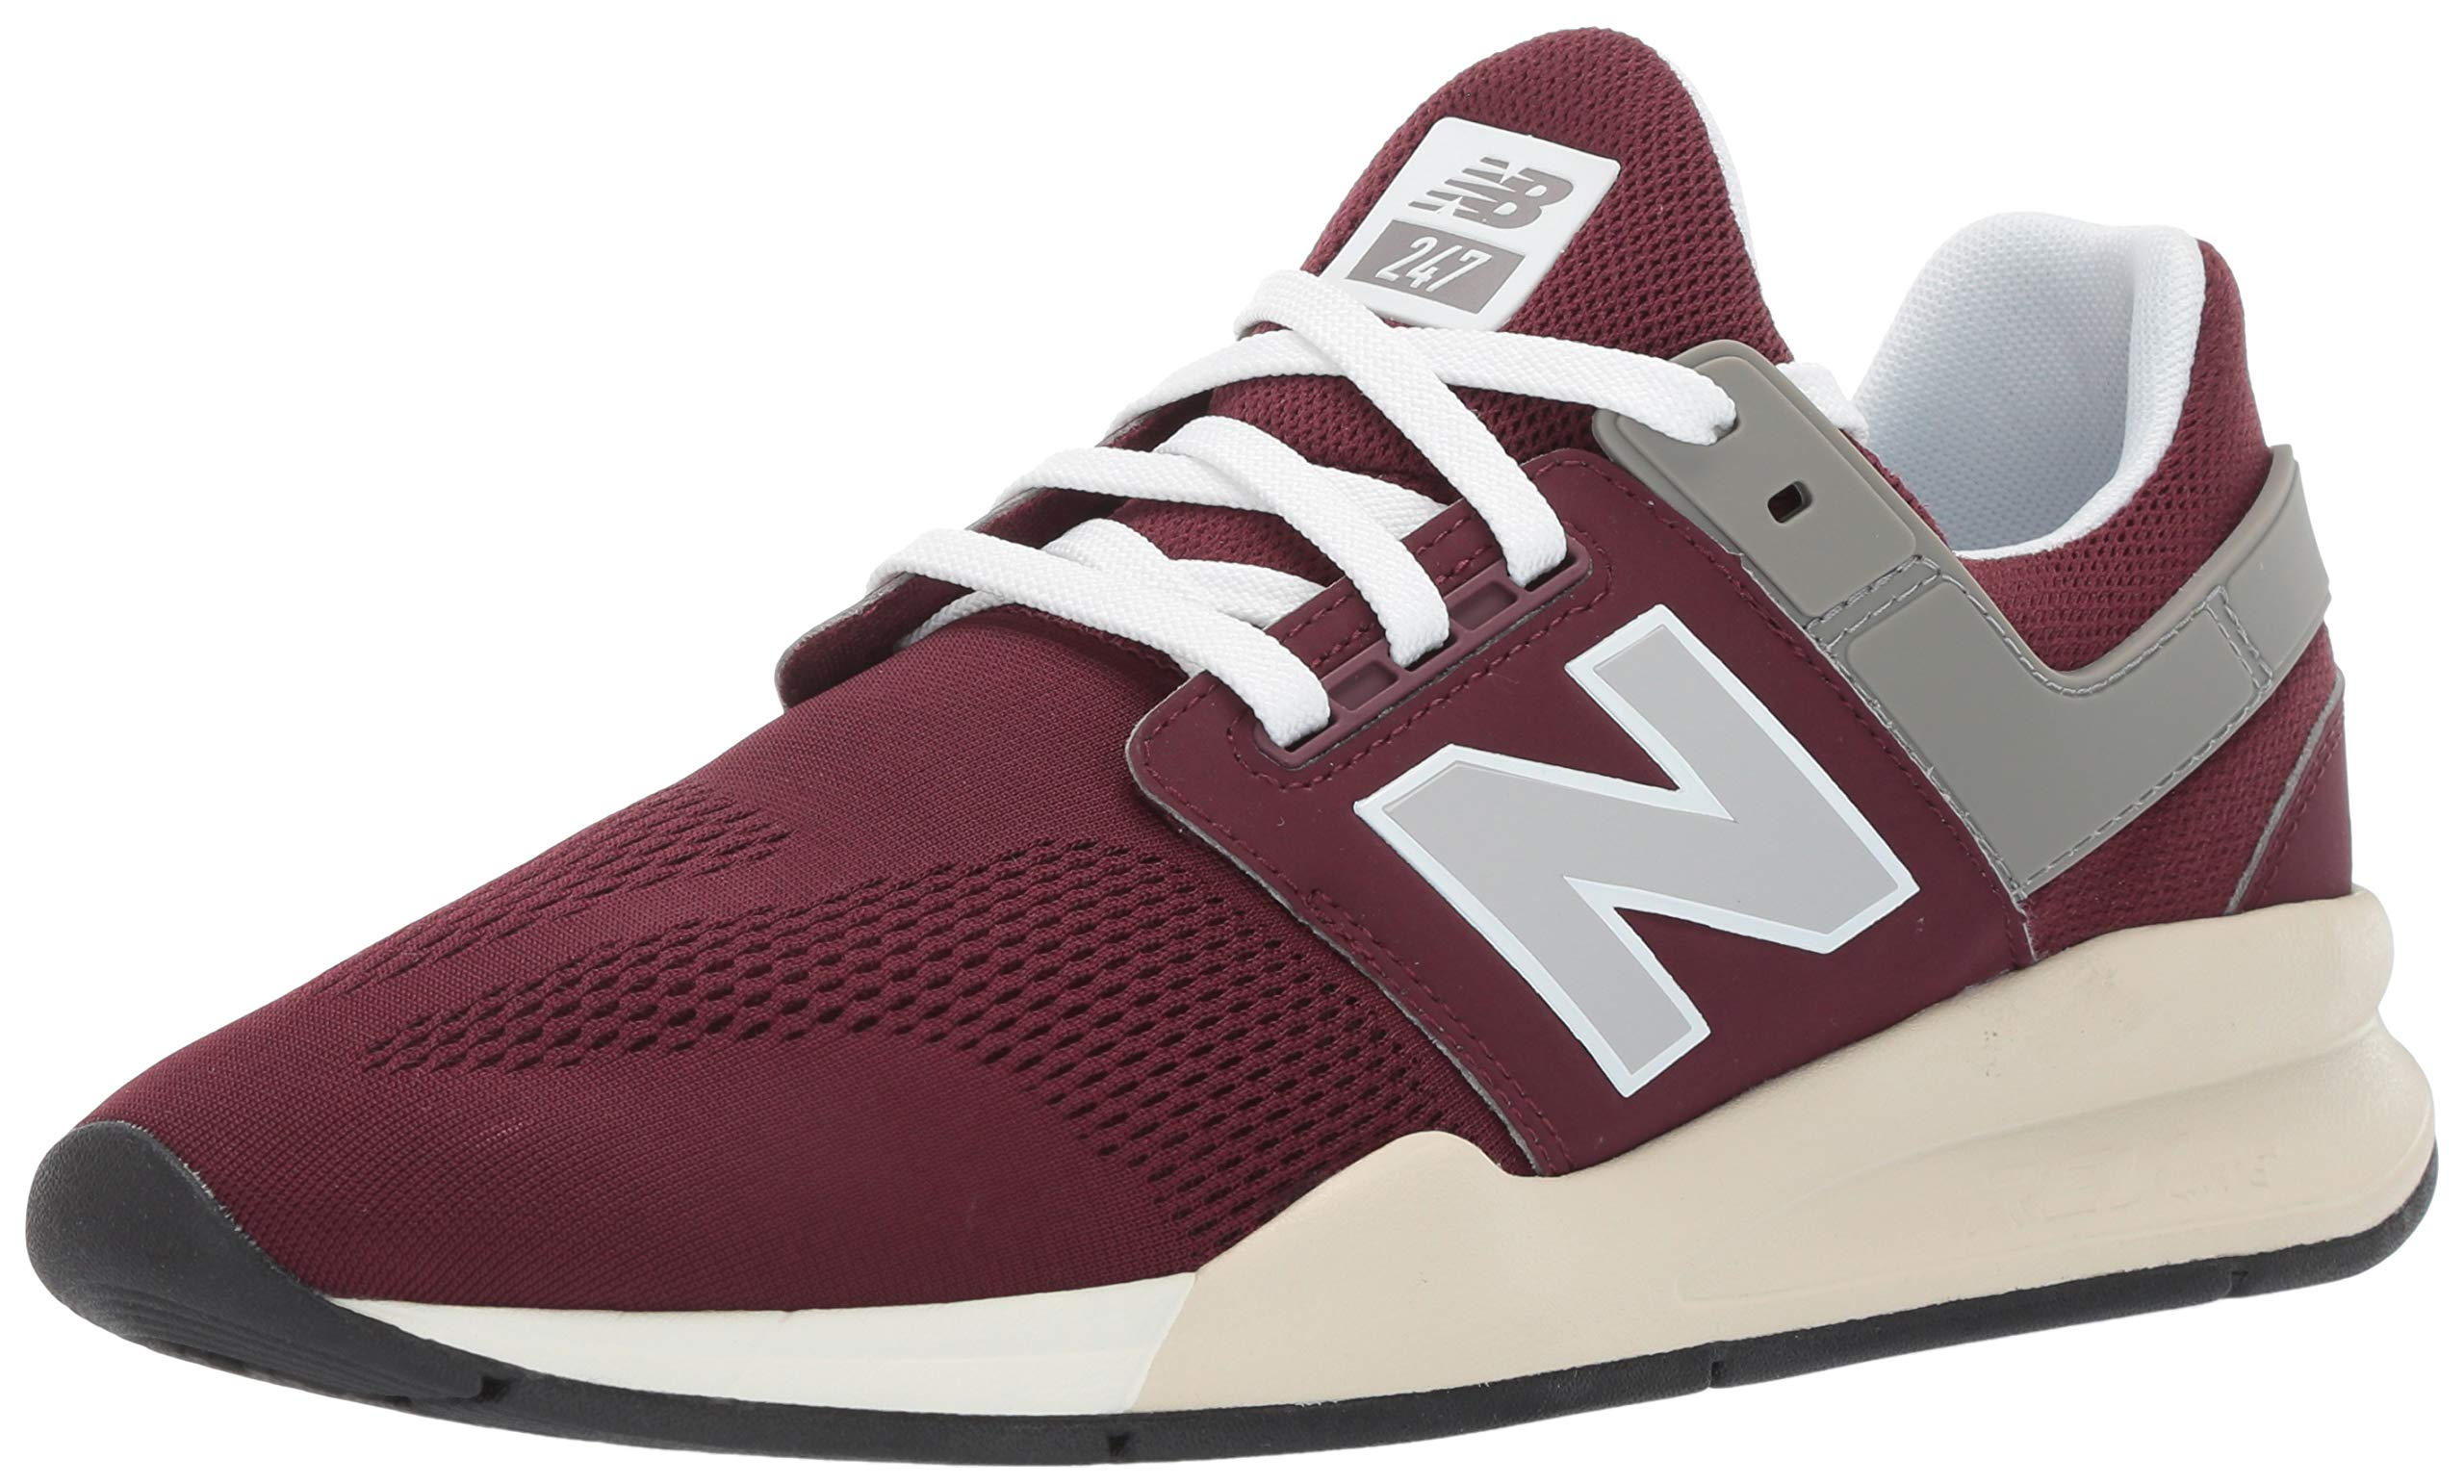 New Balance Men's 247v2 Sneaker, Nubuck Burgundy/Bone, 9.5 2E US